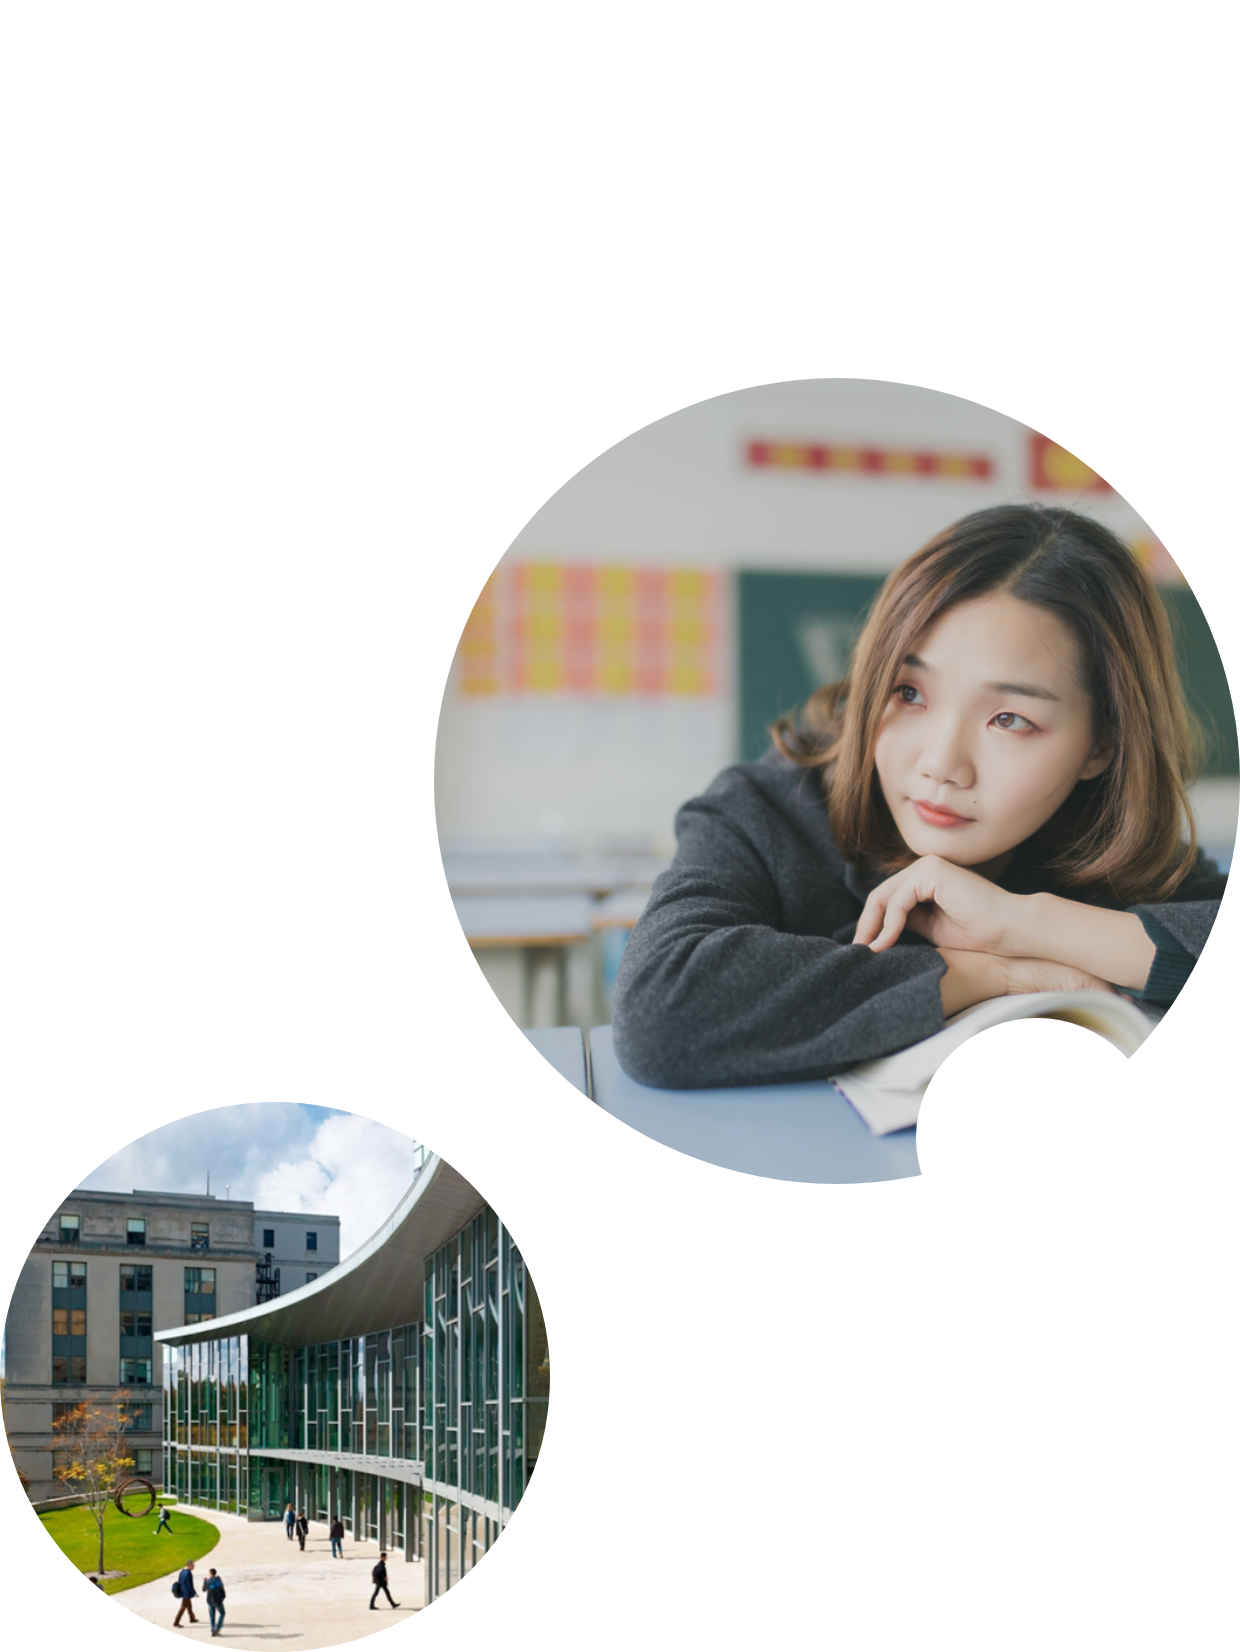 image of a woman contemplating and university front 2